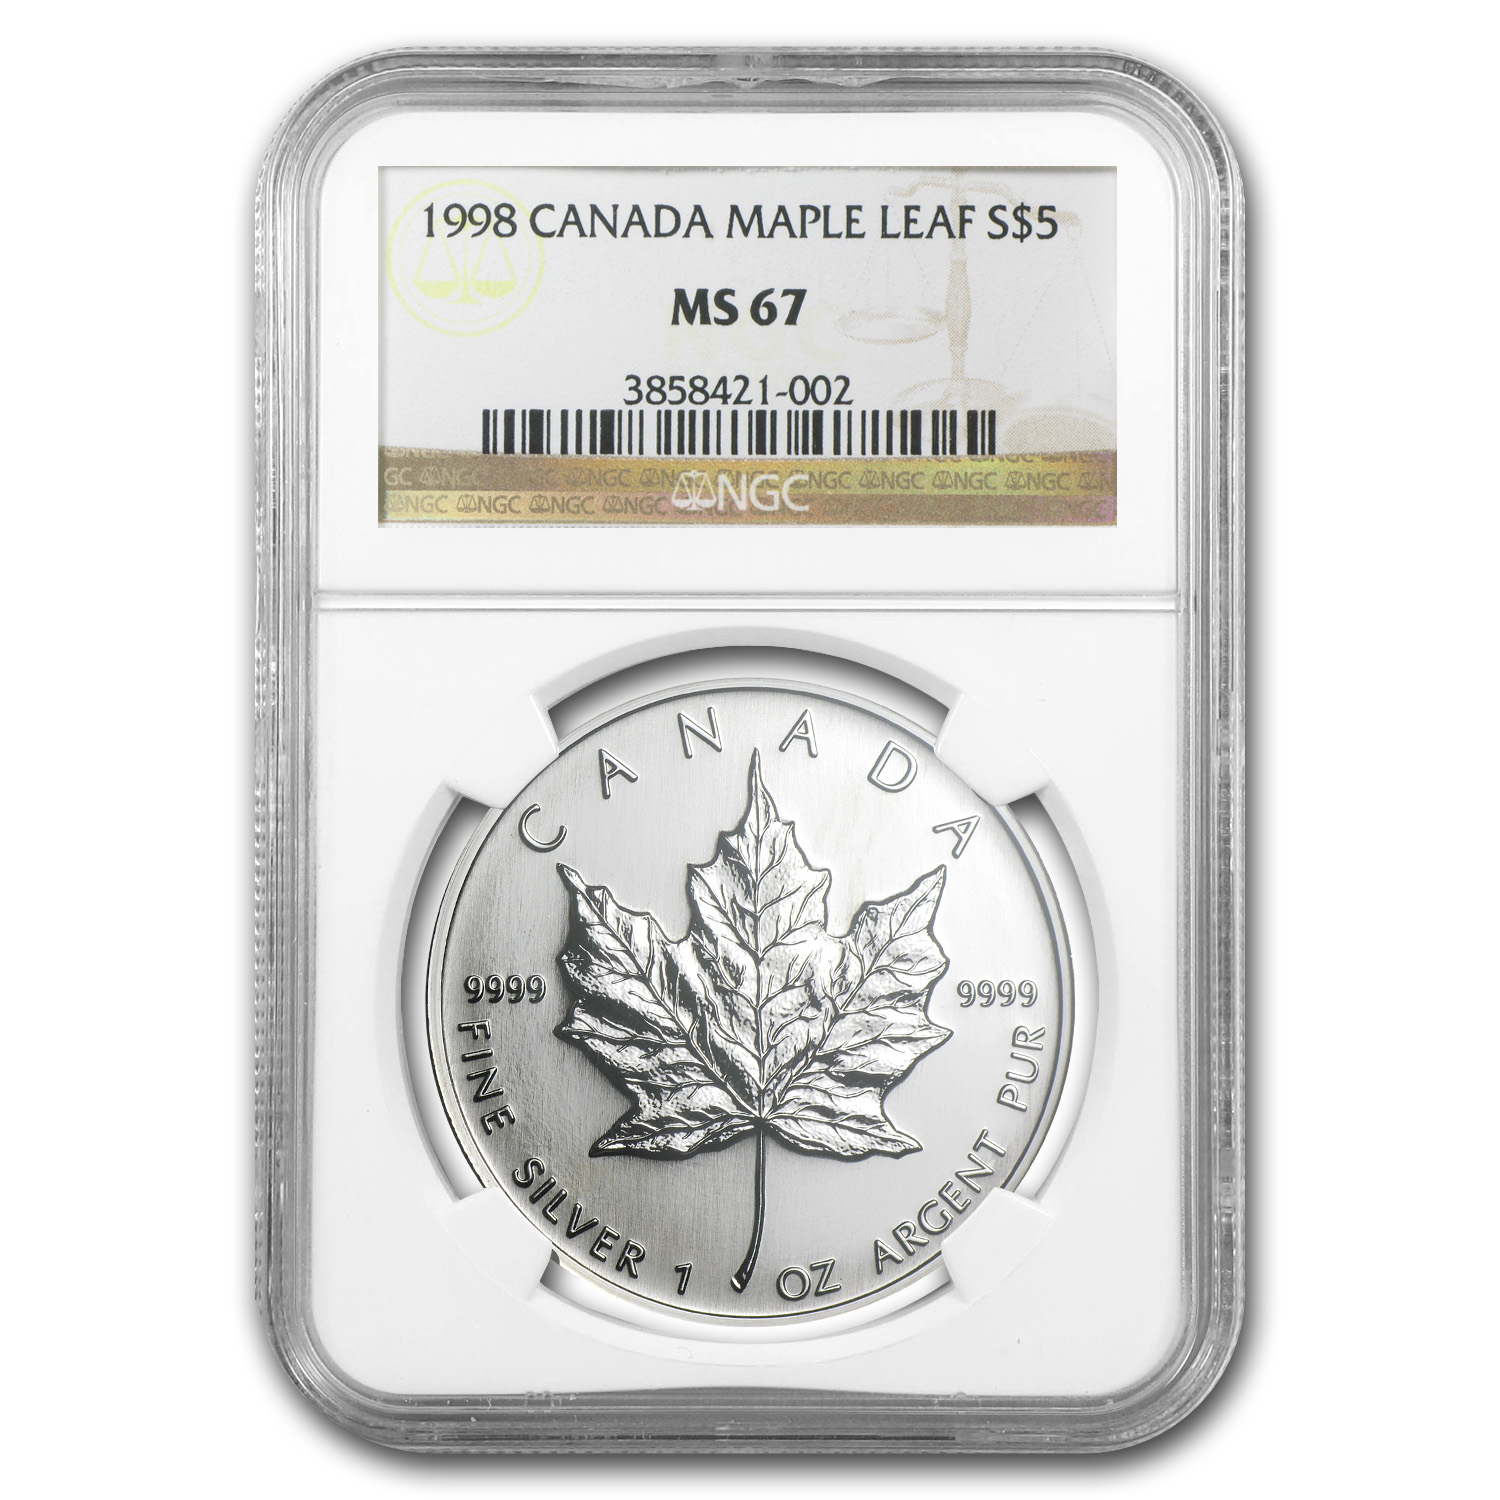 1998 Canada 1 oz Silver Maple Leaf MS-67 NGC